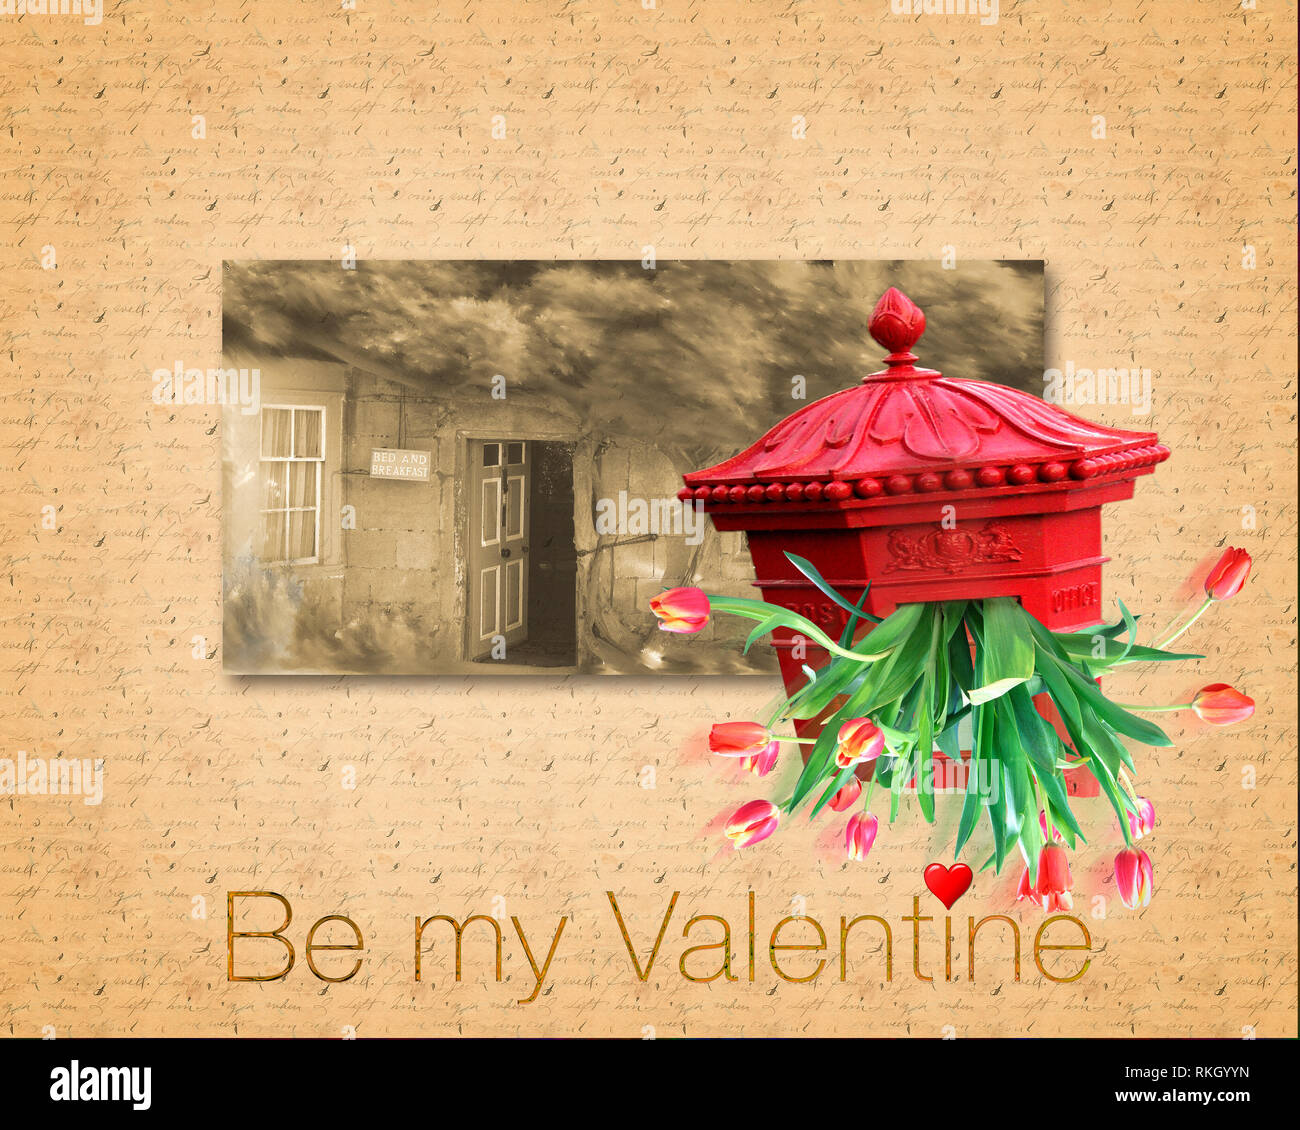 DIGITAL ART: Valentine's Card Design - Stock Image